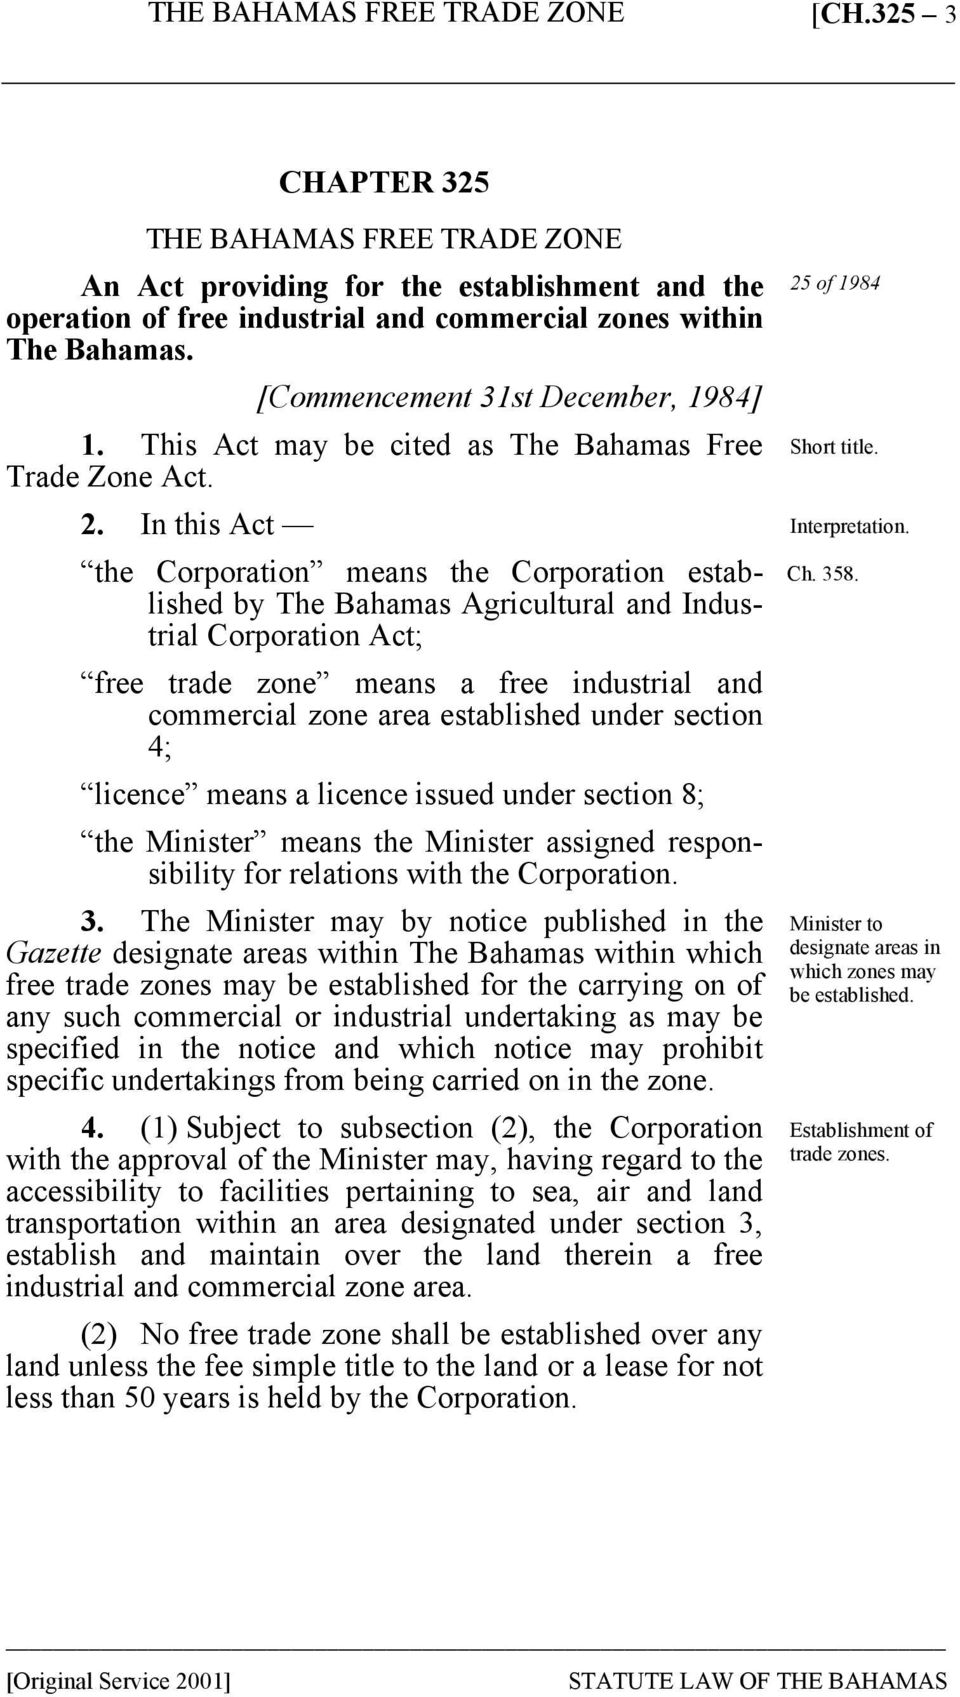 In this Act the Corporation means the Corporation established by The Bahamas Agricultural and Industrial Corporation Act; free trade zone means a free industrial and commercial zone area established